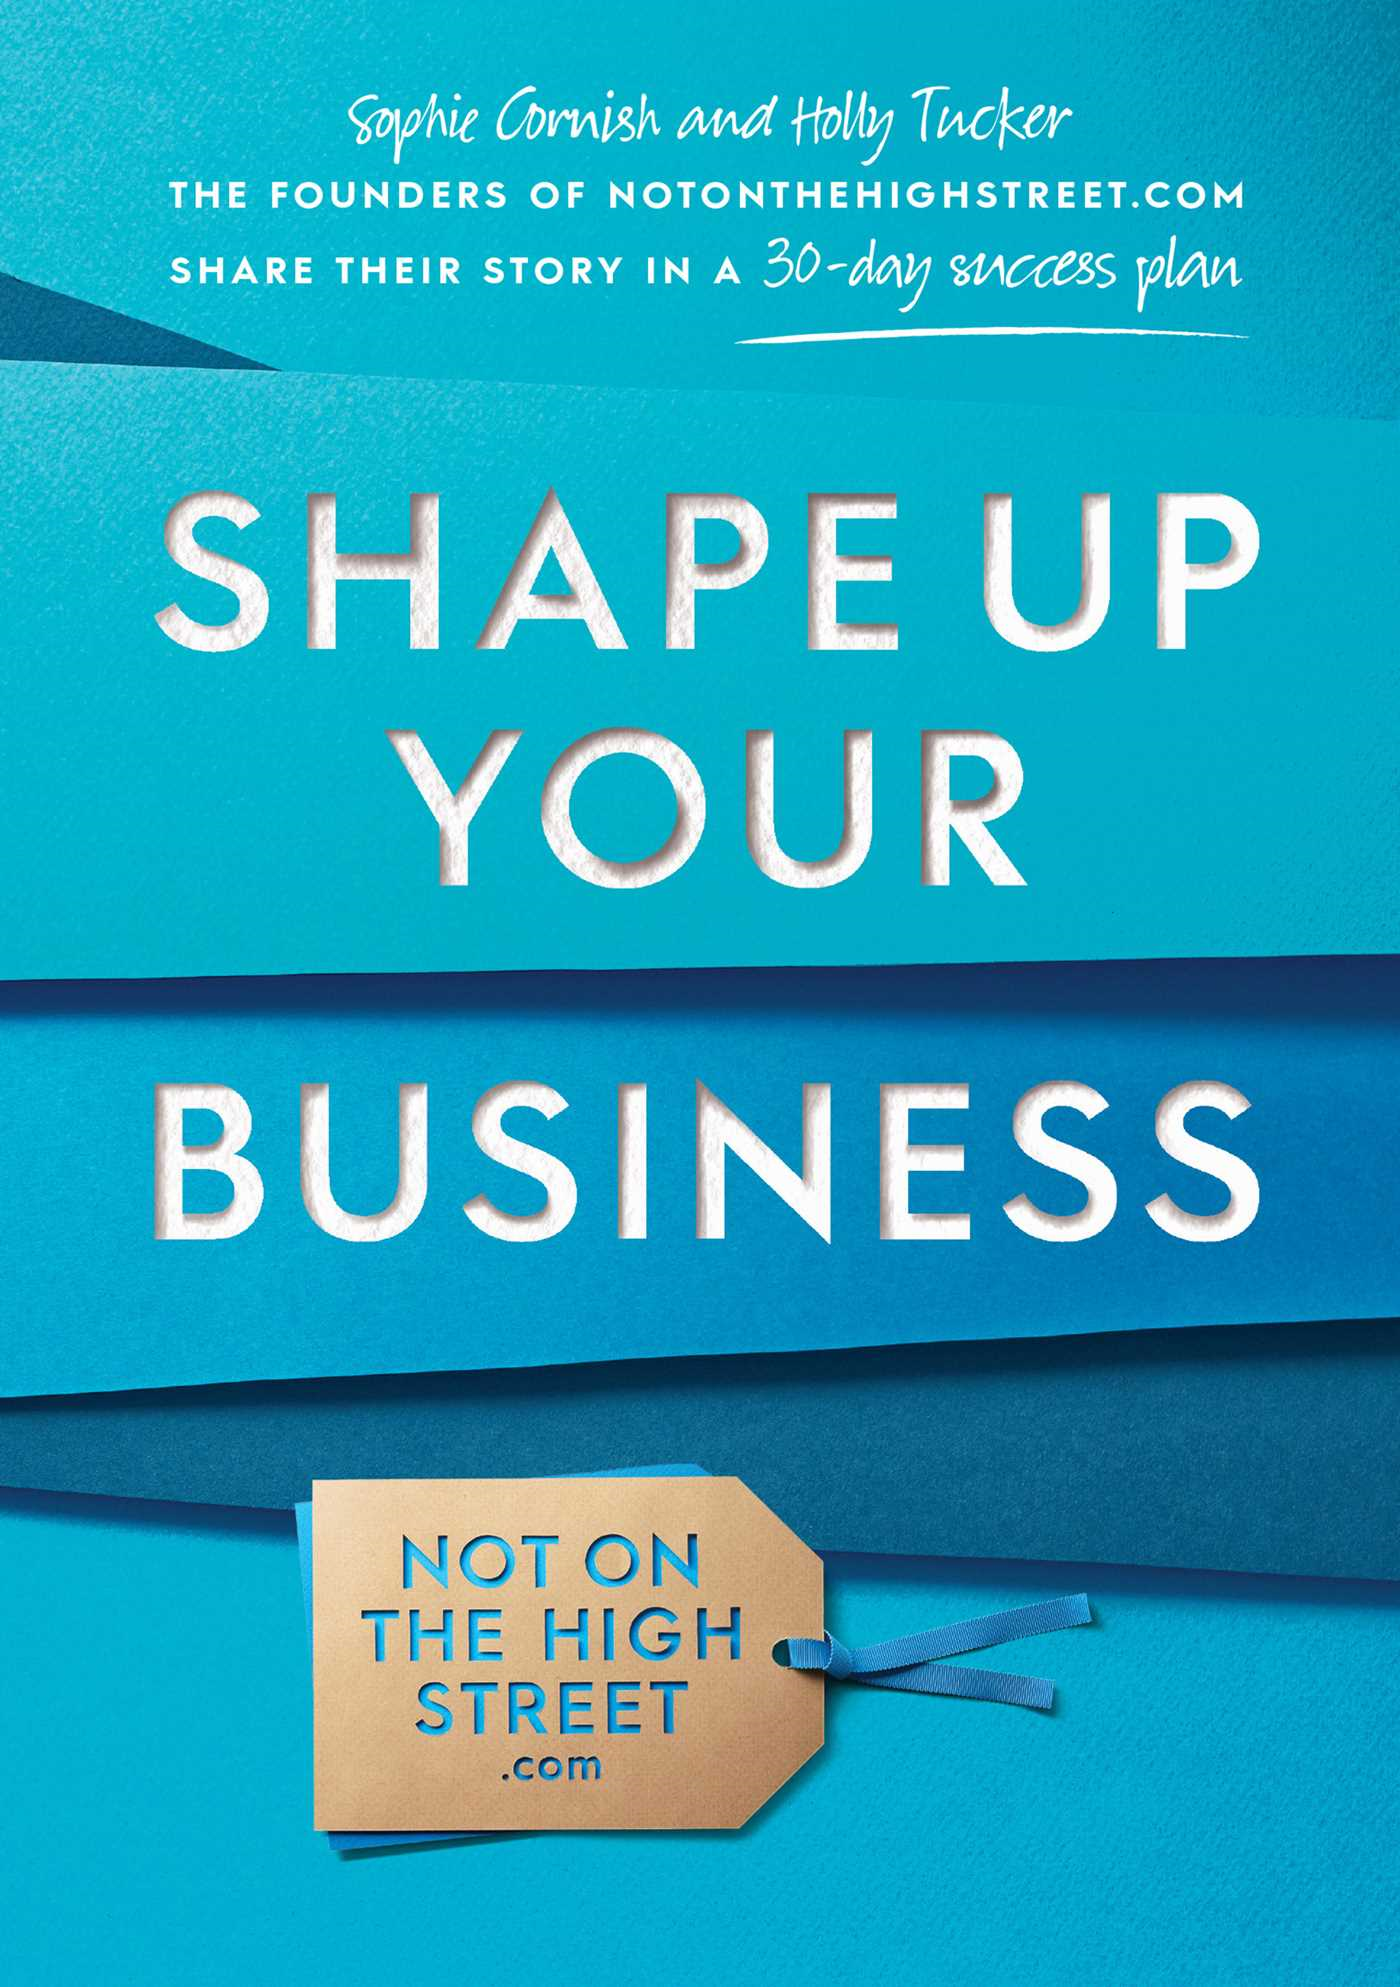 Shape Up Your Business The founders of notonthehighstreet.com share their story in a 30-day success plan